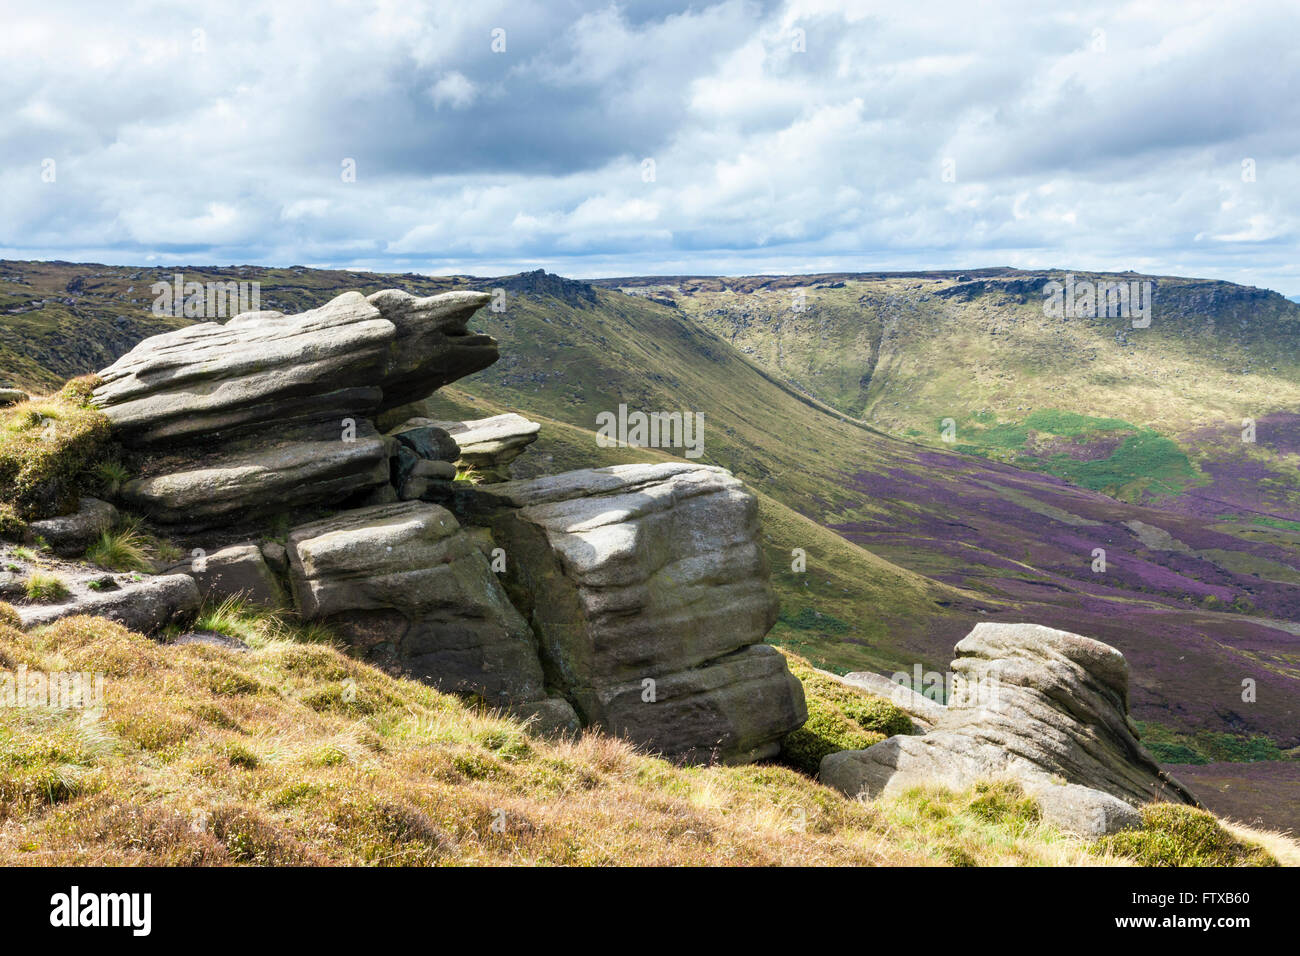 Rocky outcrop of gritstone at Seal Edge, part of the northern edge along Kinder Scout, Derbyshire, Peak District - Stock Image